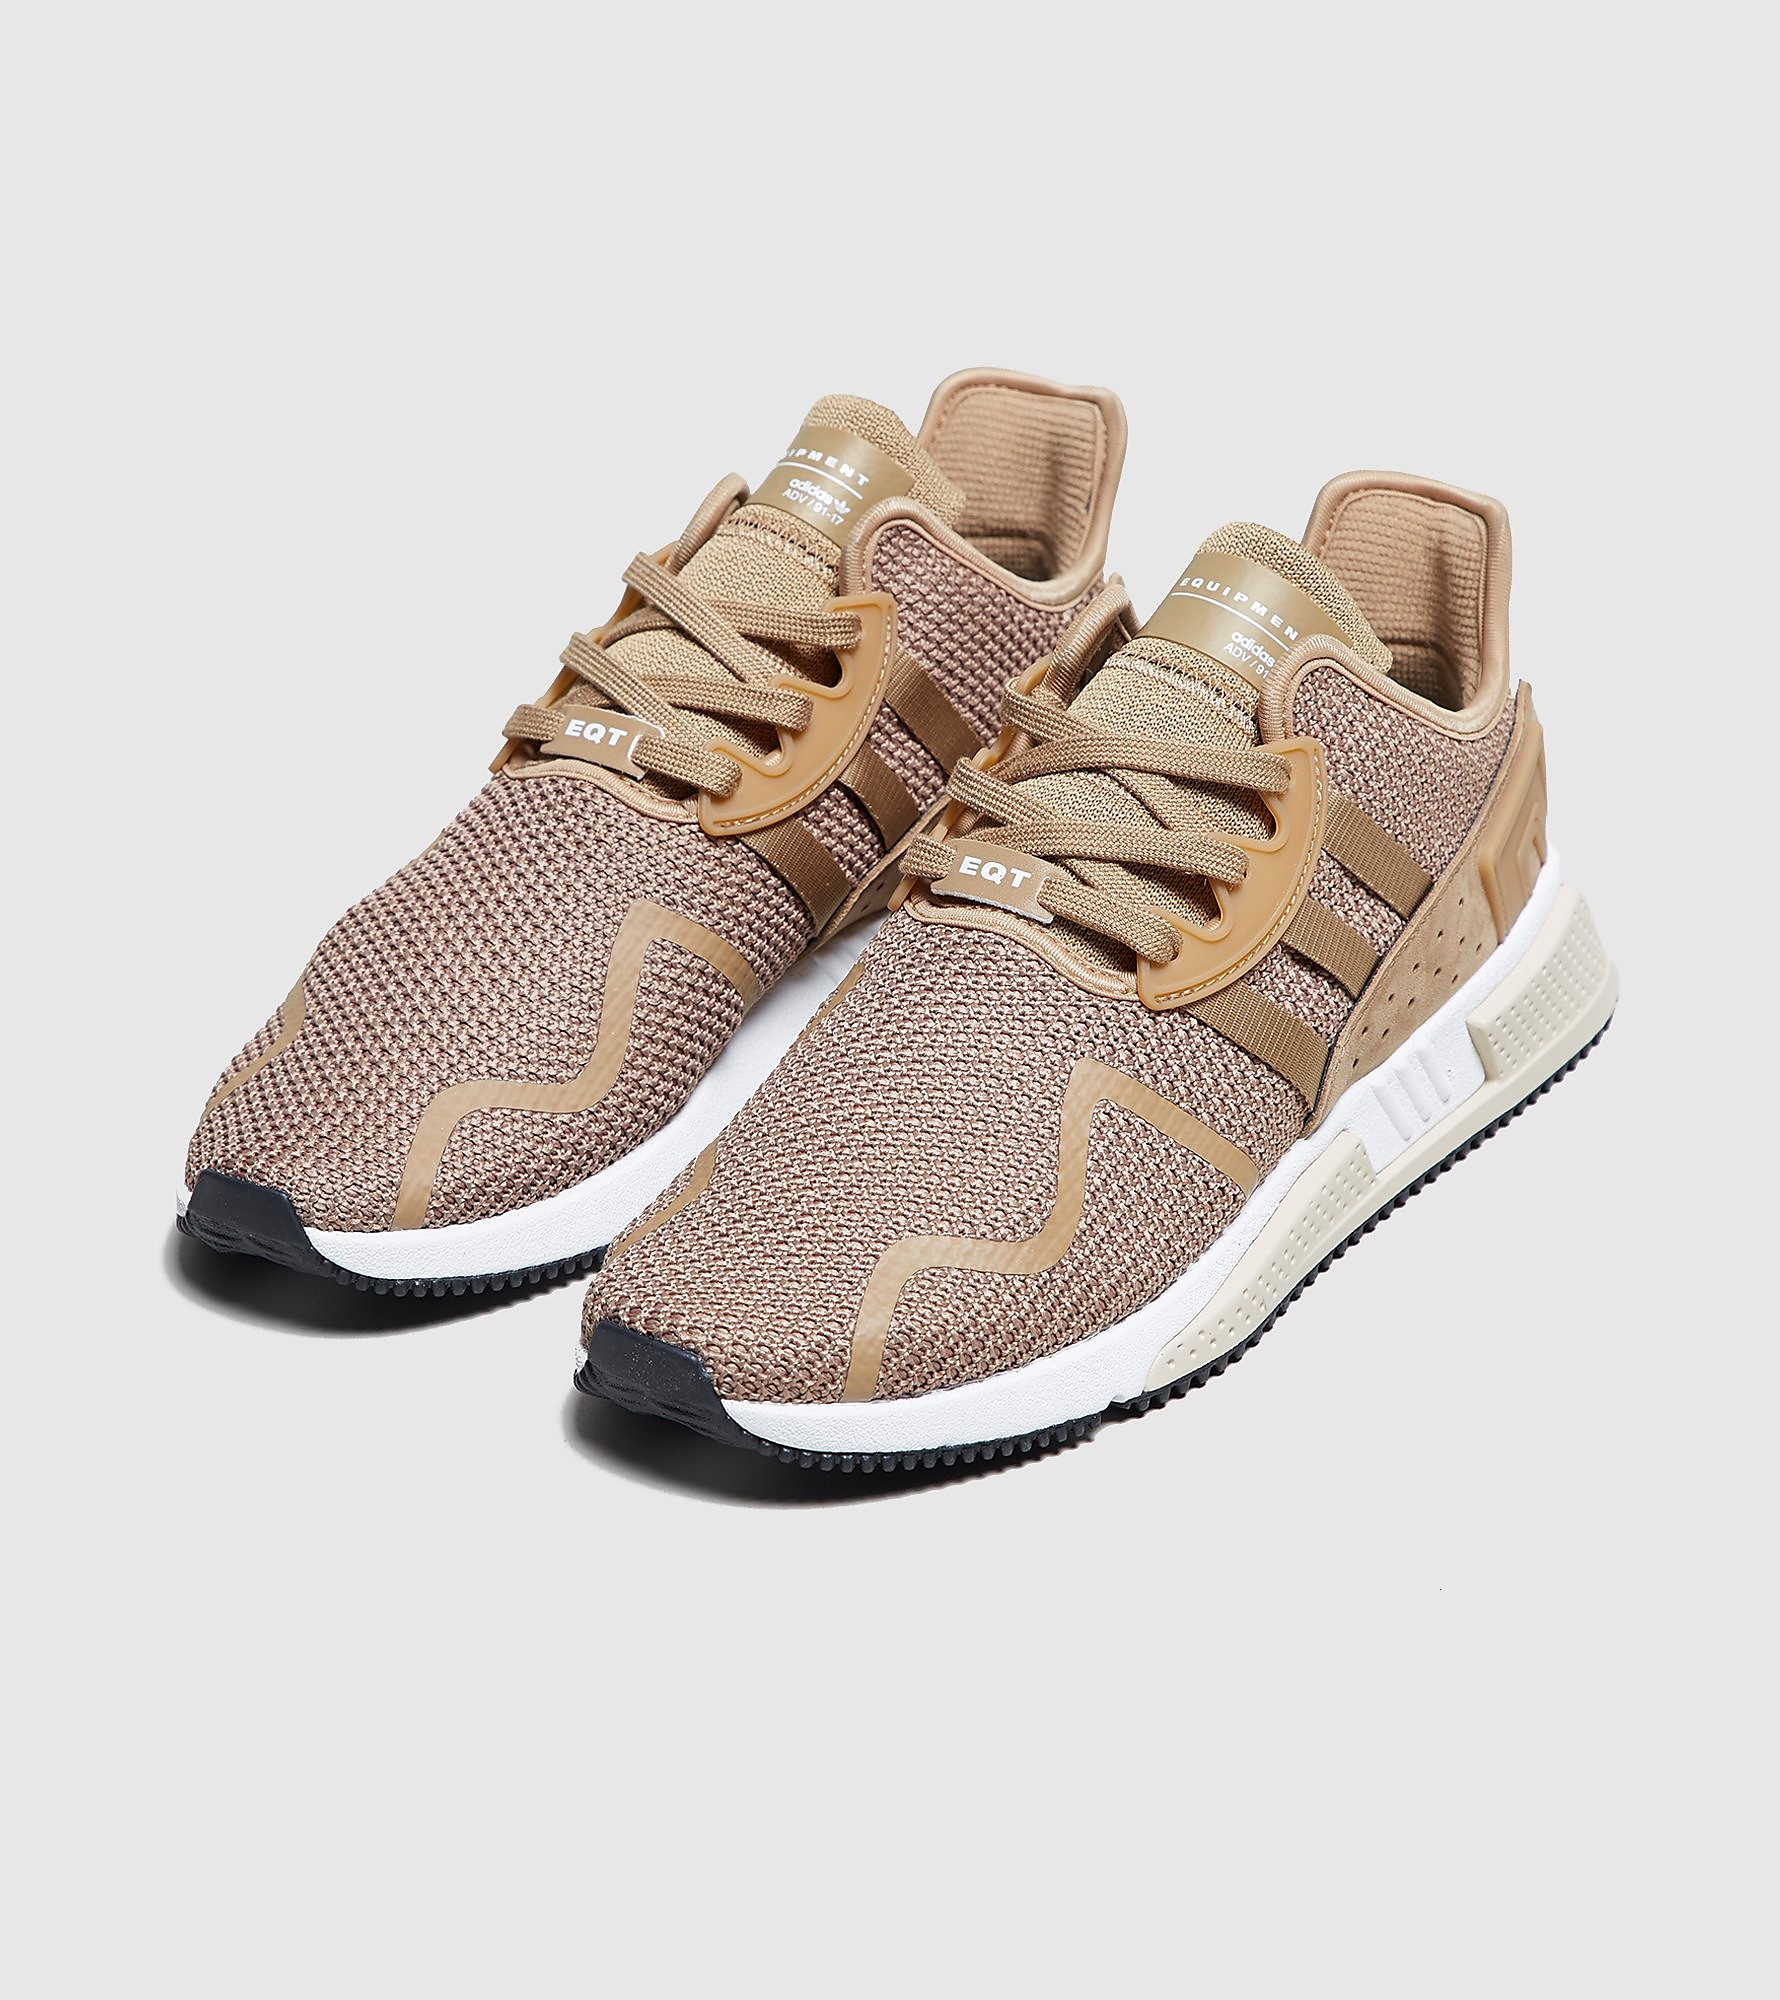 adidas Originals EQT Cushion - Exclusivité size?